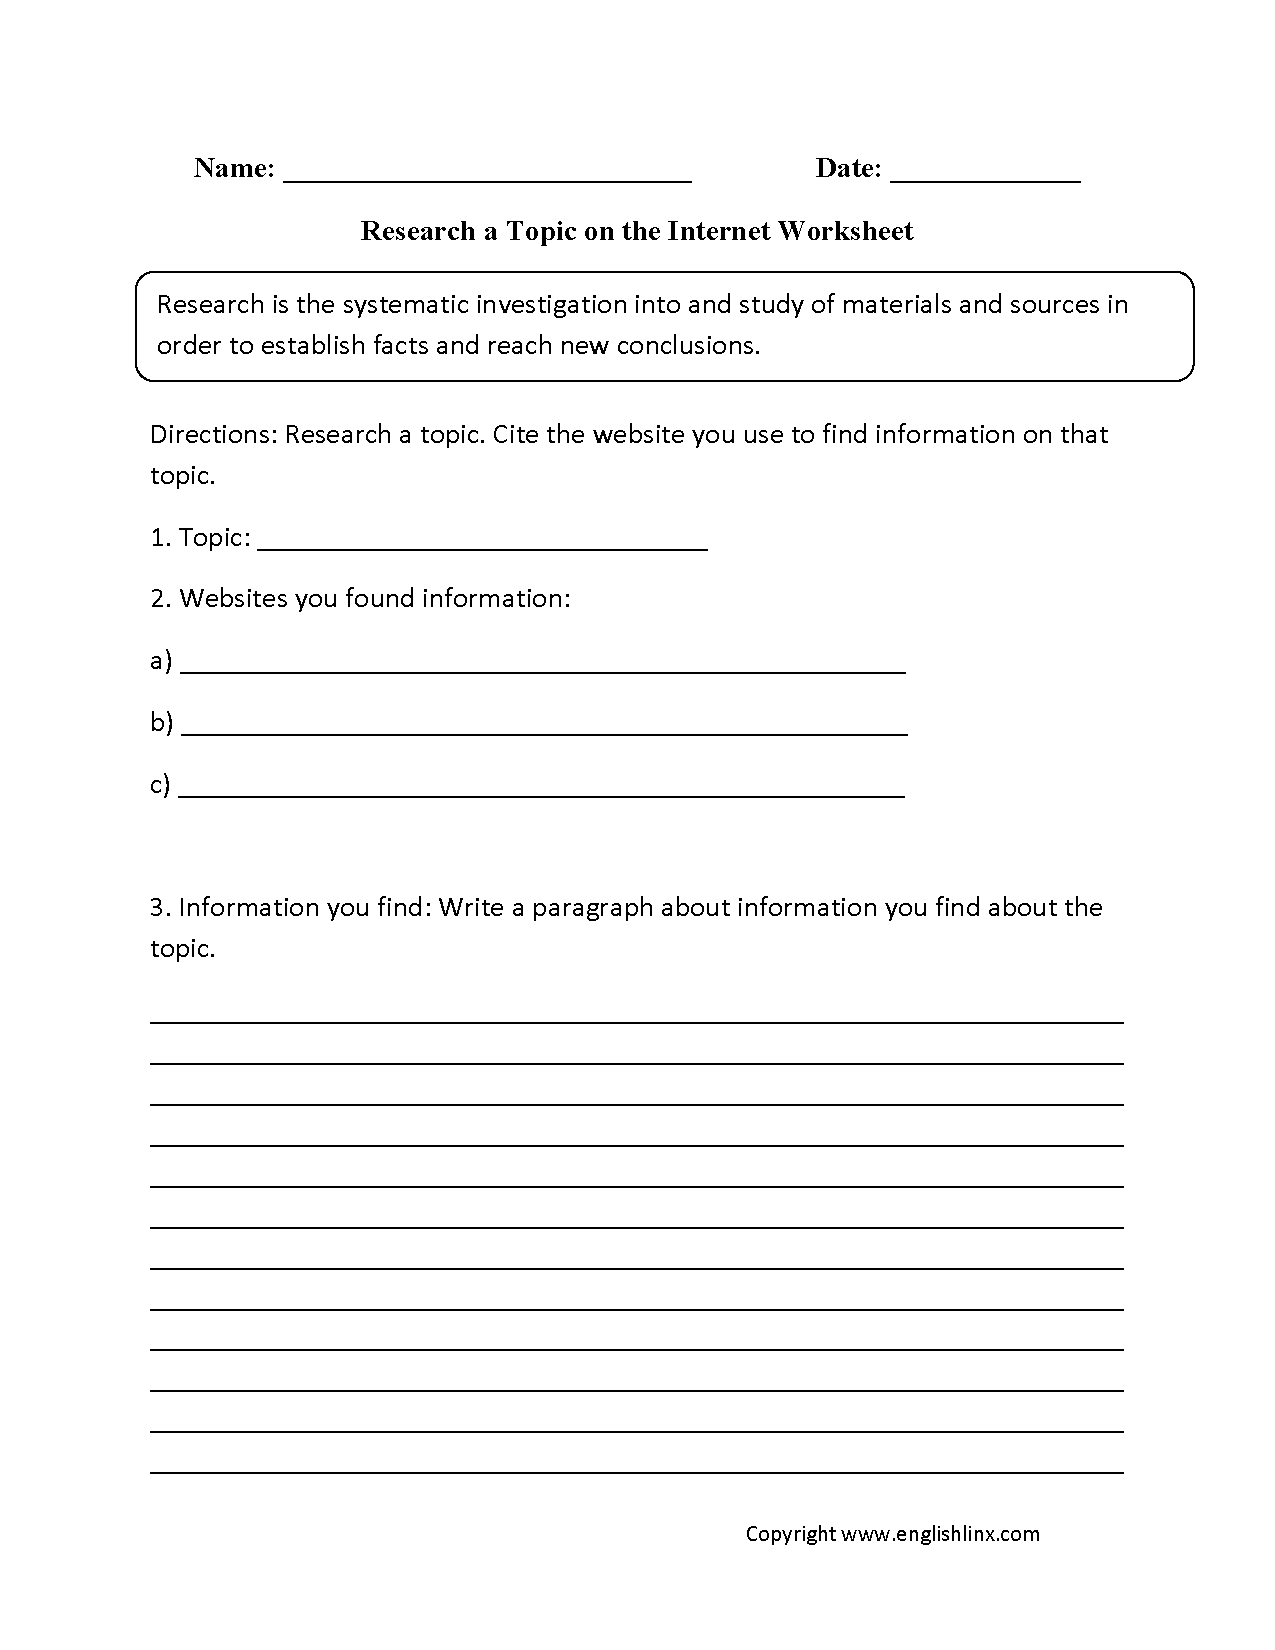 Aldiablosus  Personable Englishlinxcom  Research Worksheets With Hot On The Internet Worksheet With Extraordinary Insert Worksheet Excel Also Past Present And Future Worksheets For First Grade In Addition Energy Transfer Worksheet And Worksheet Introduction To Bonding Answers As Well As Worksheet Domain And Range Additionally Greatest Integer Function Worksheet From Englishlinxcom With Aldiablosus  Hot Englishlinxcom  Research Worksheets With Extraordinary On The Internet Worksheet And Personable Insert Worksheet Excel Also Past Present And Future Worksheets For First Grade In Addition Energy Transfer Worksheet From Englishlinxcom